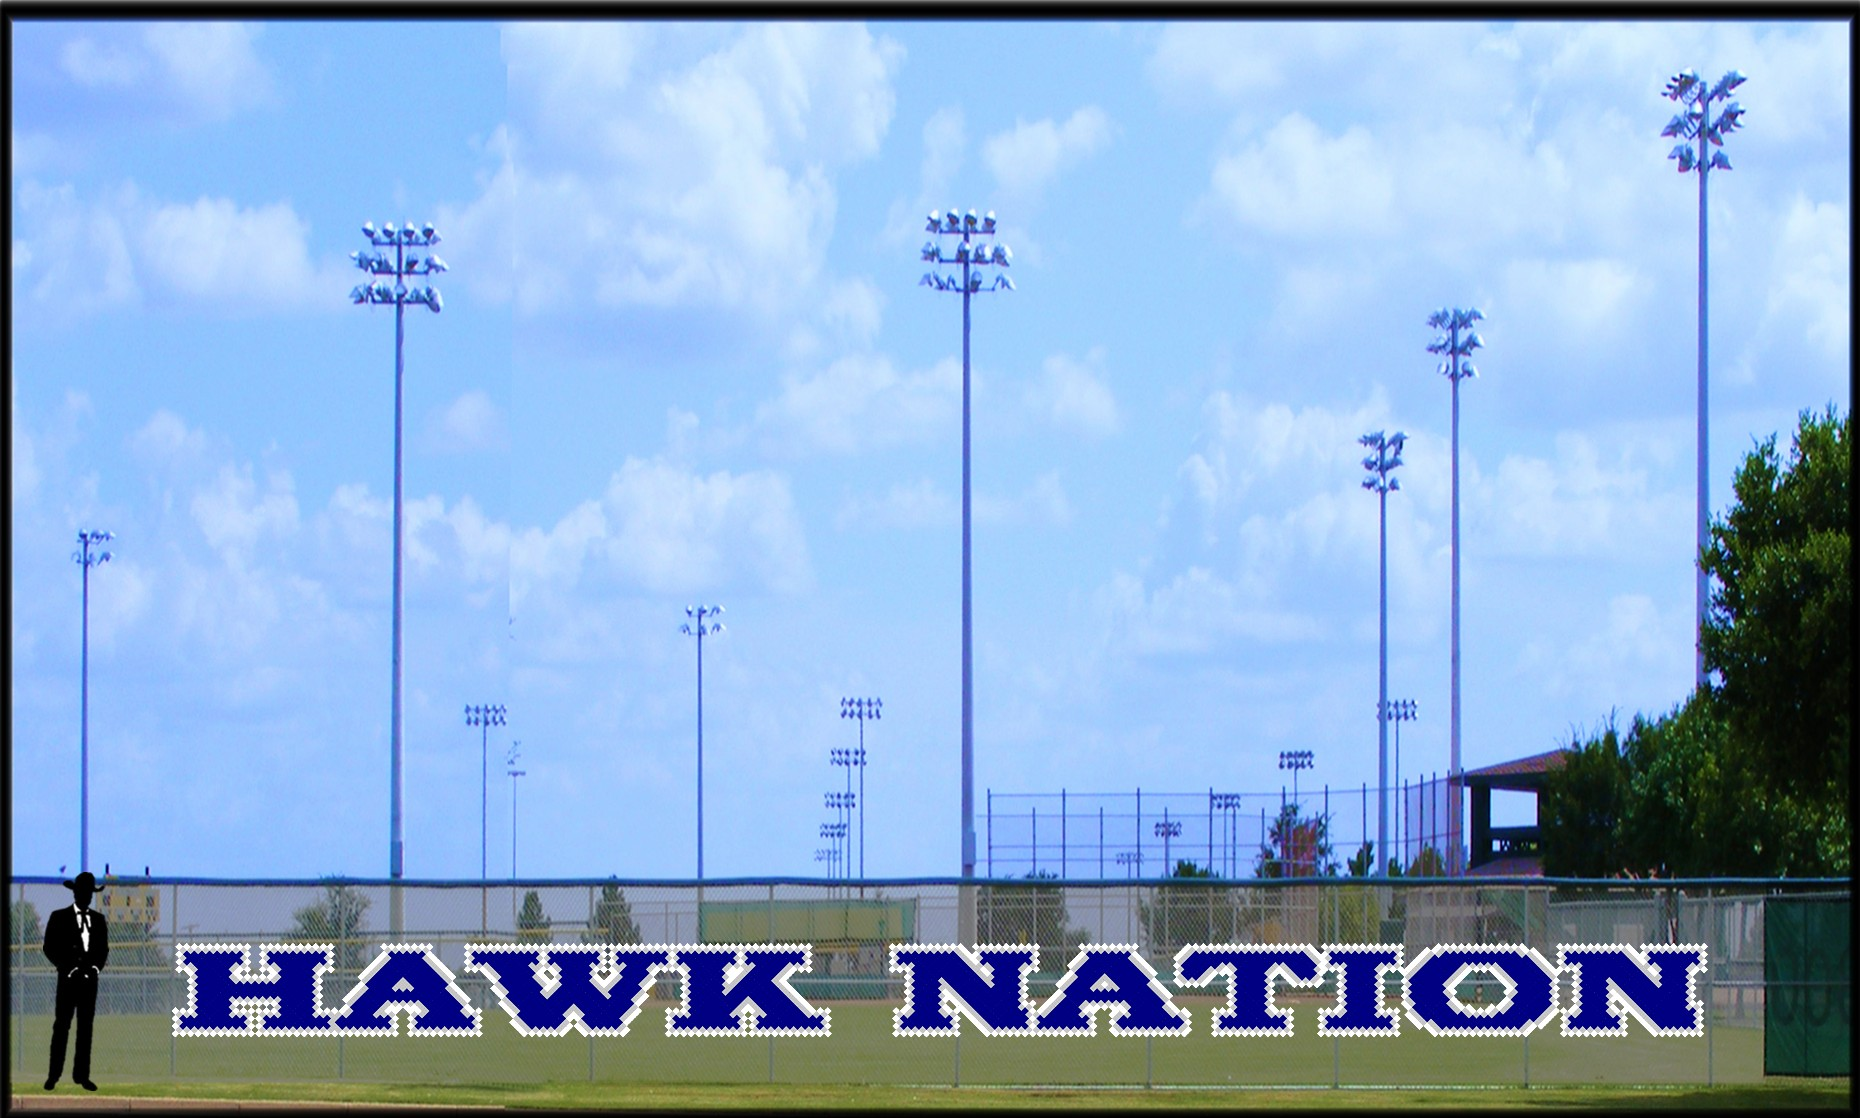 3.5' Hawk Nation (3 Colors)